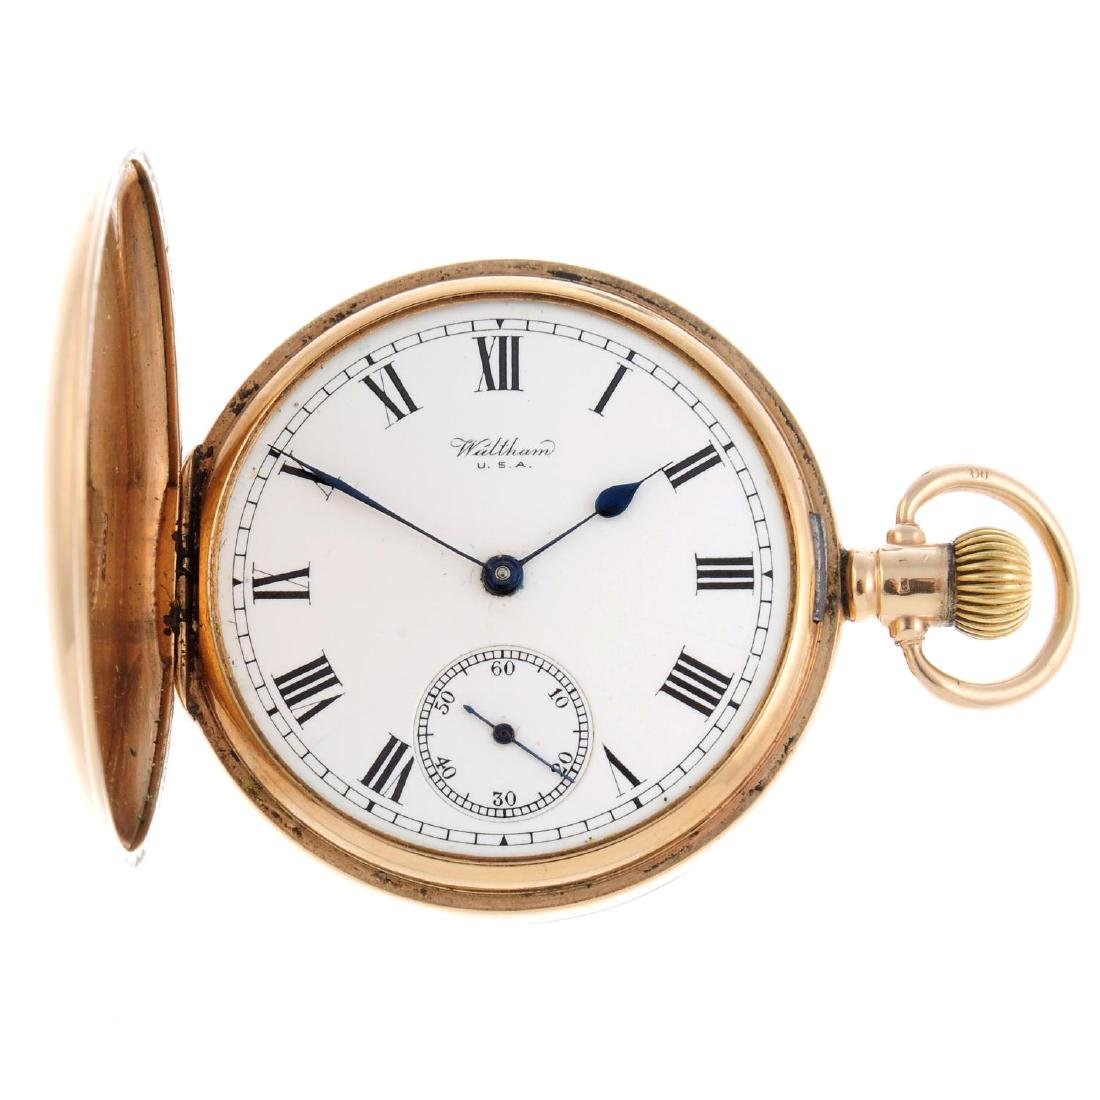 A full hunter pocket watch by Waltham. 9ct yellow gold